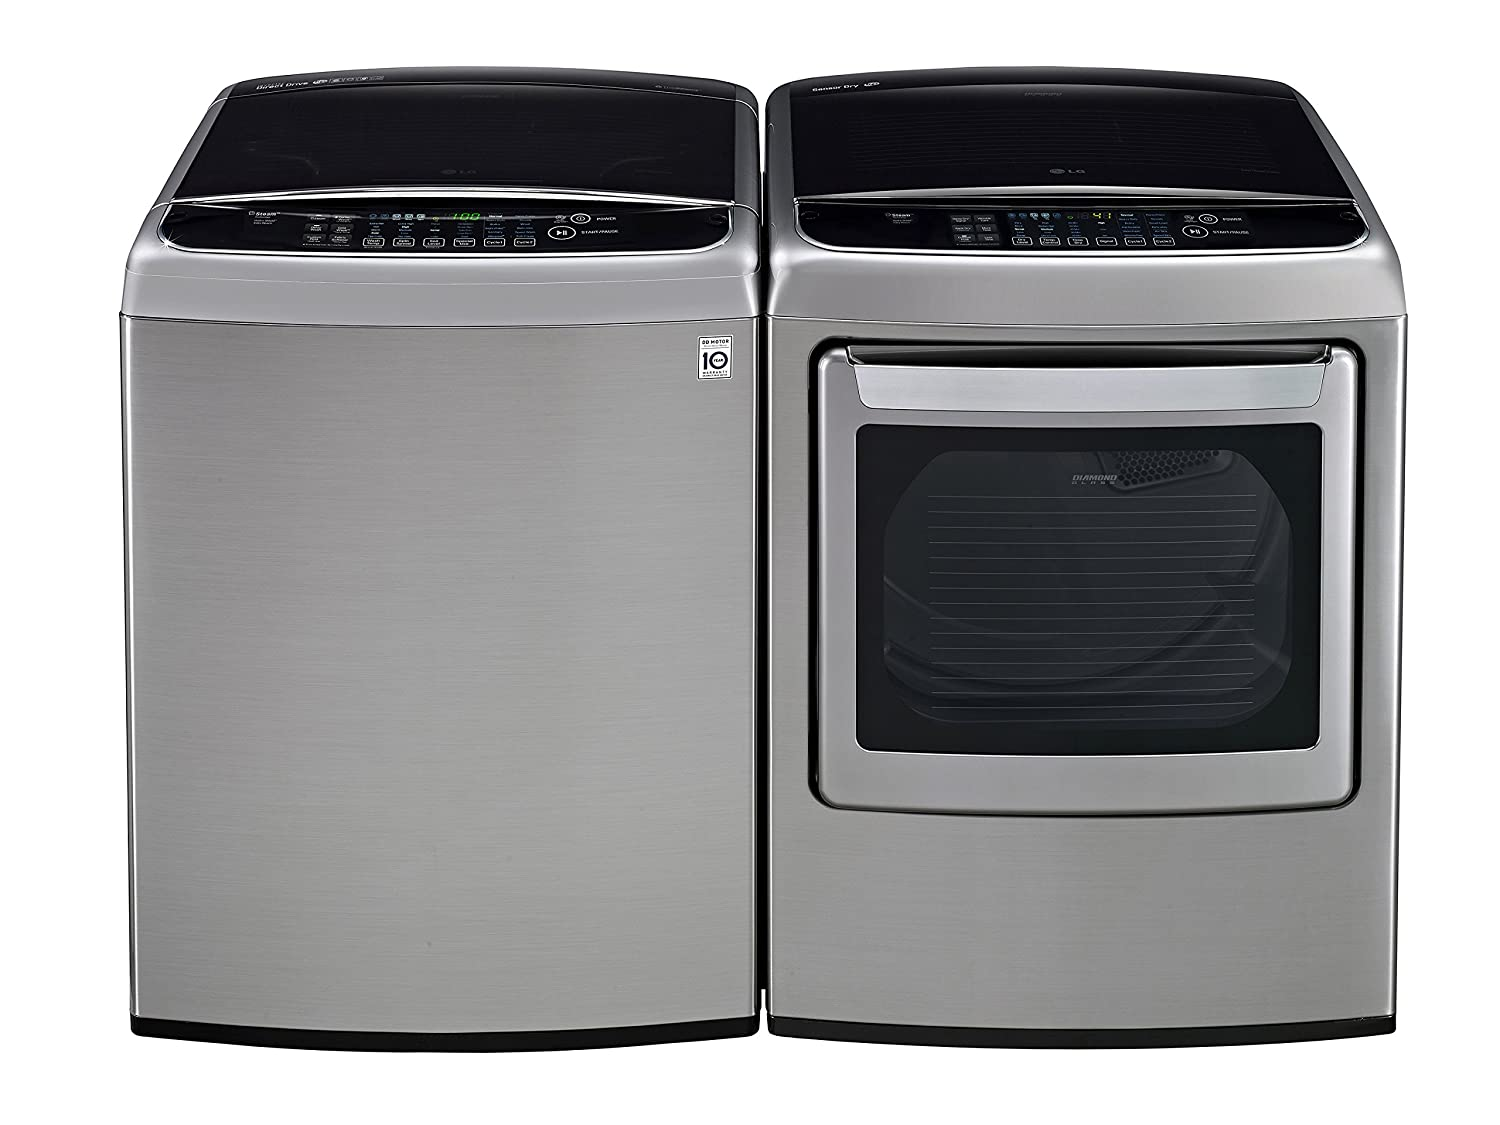 LG POWER PAIR SPECIAL-Mega Capacity High Efficiency Top Load Laundry System with Innovative Easy Load Dryer*Graphite Steel*WT1801HVA_DLEY1701VE)